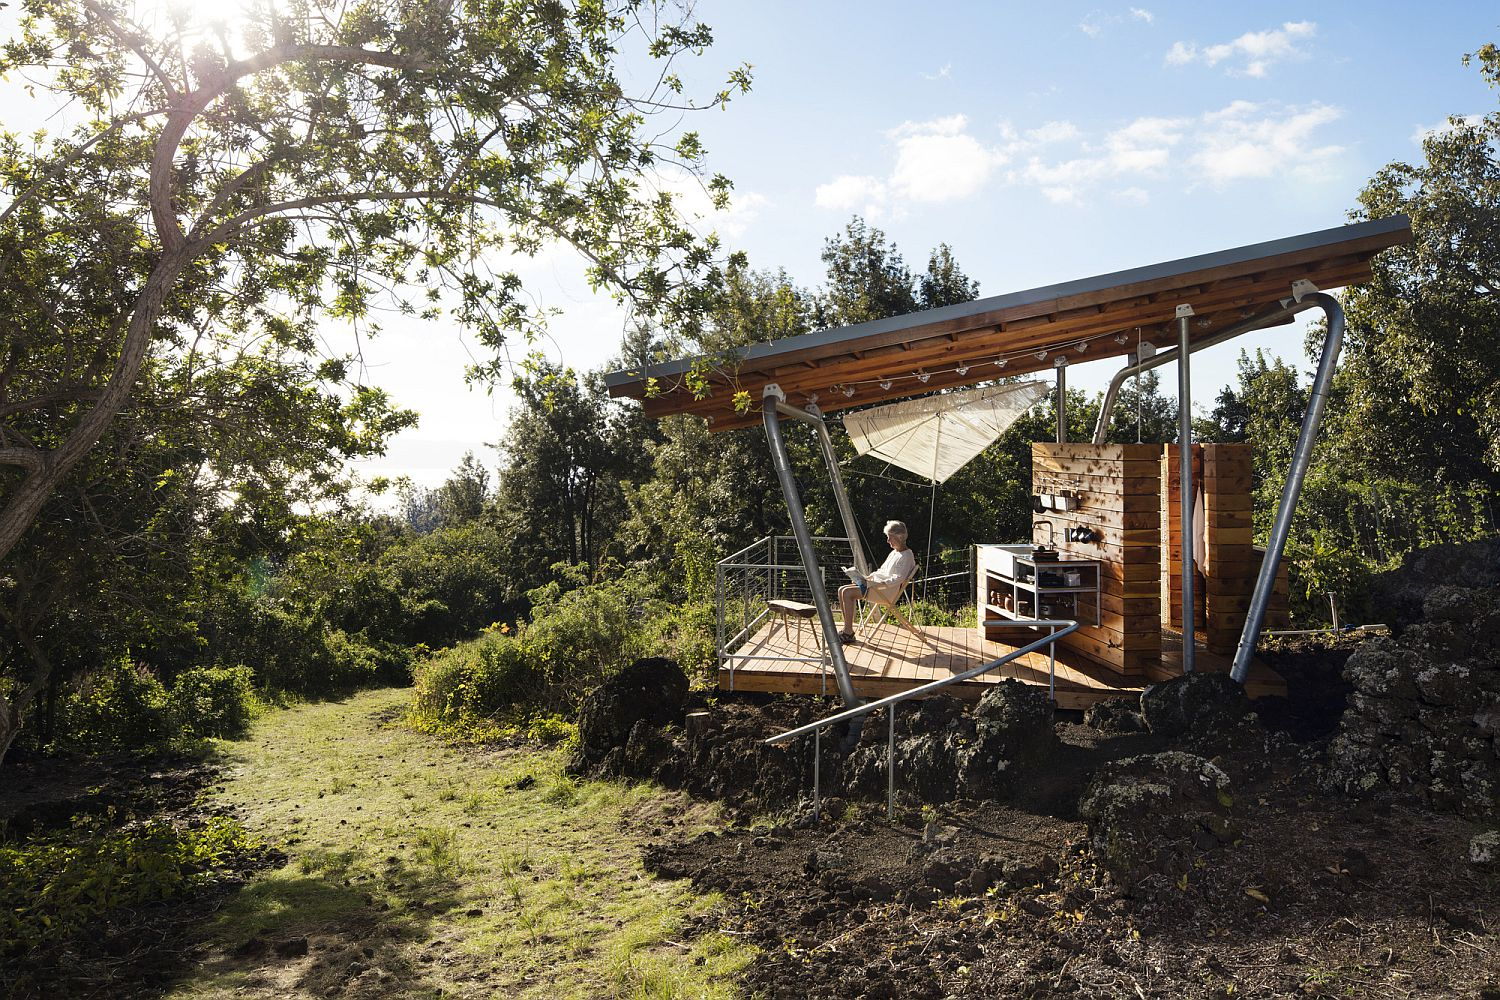 Fabulous pavilion style outdoor house sits above the 300-year old lava flow